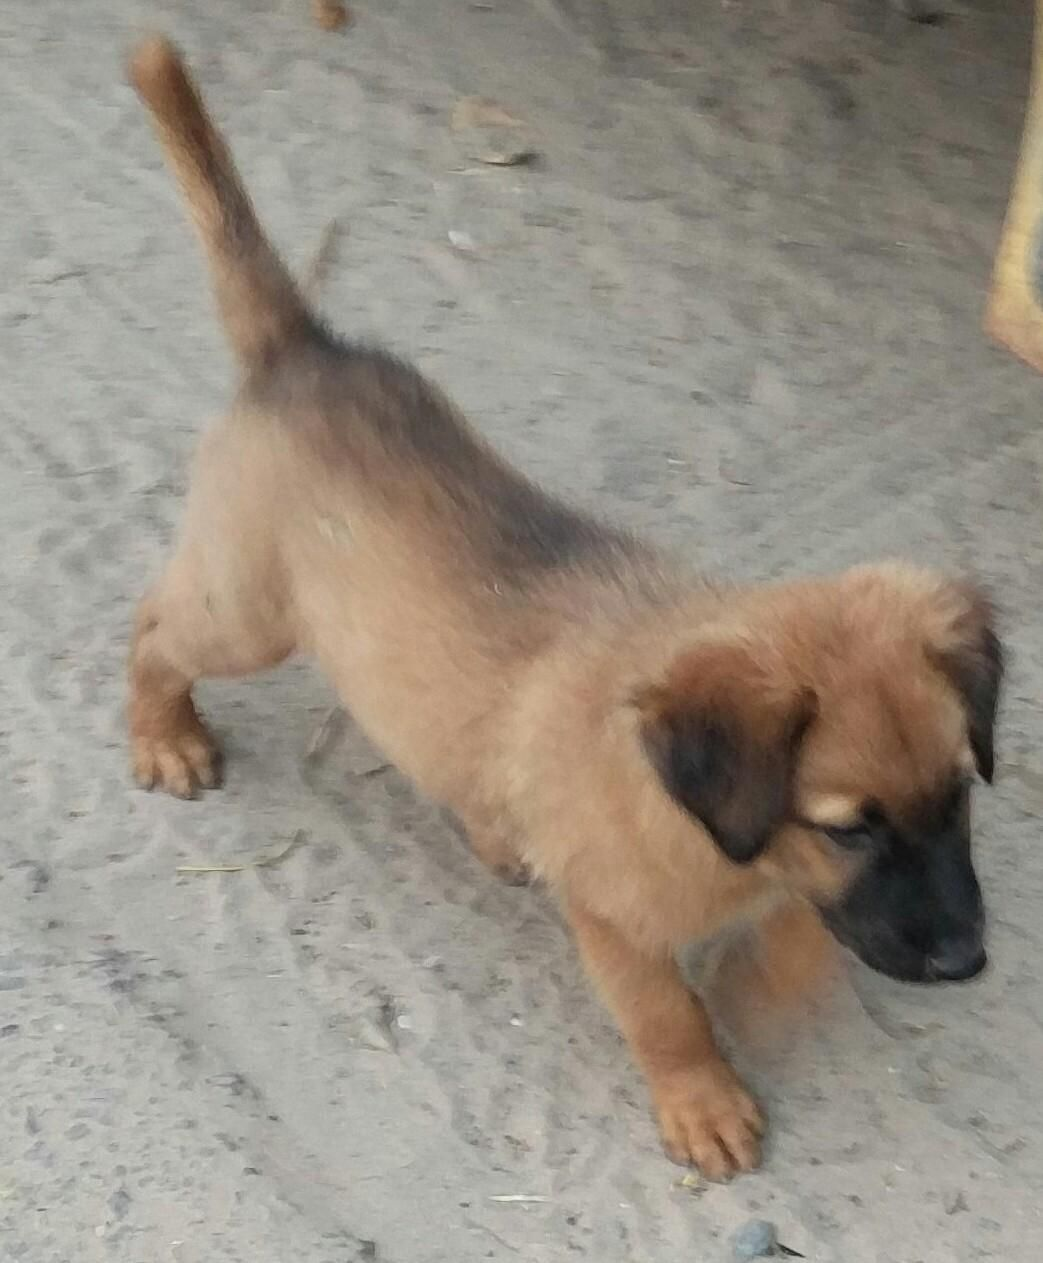 Look what I found: A puppy with a straight tail ! http://ift.tt/2eB1b96